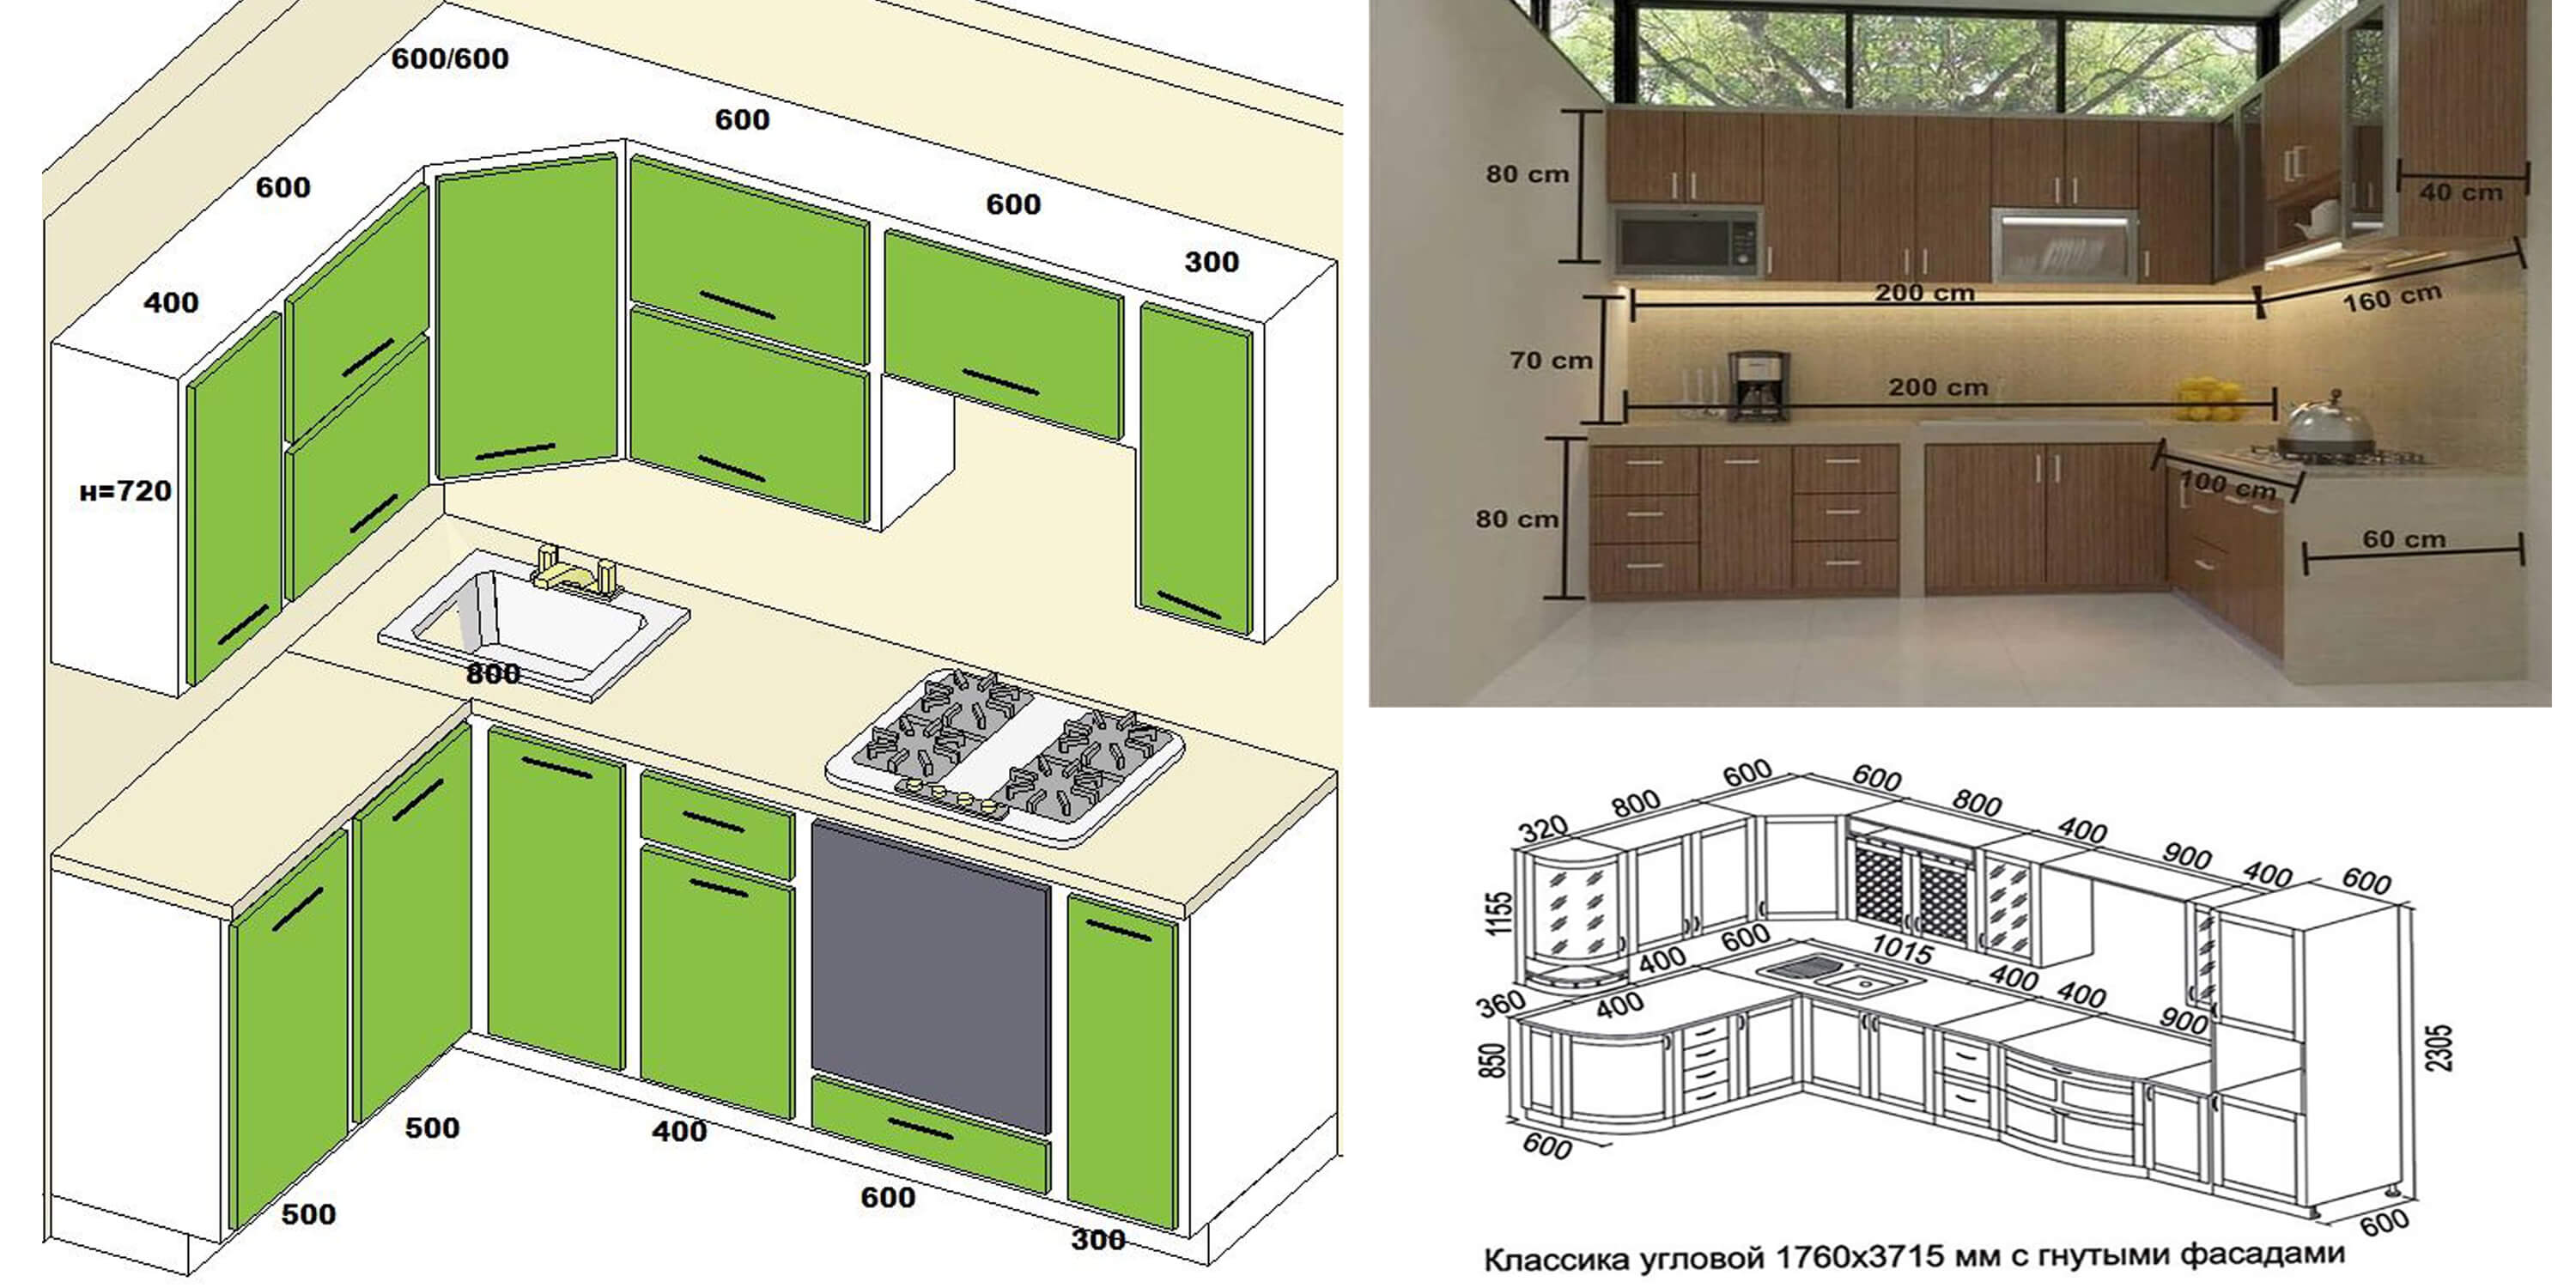 Kitchen Layout With Dimensions   Novocom.top